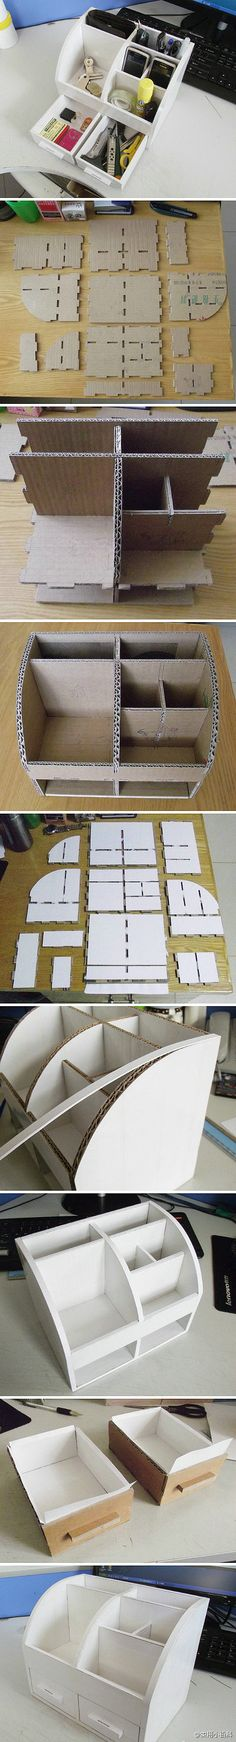 organiser this is a great idea i would add some different color paint or wallpaper or somthing like that and some designs :)